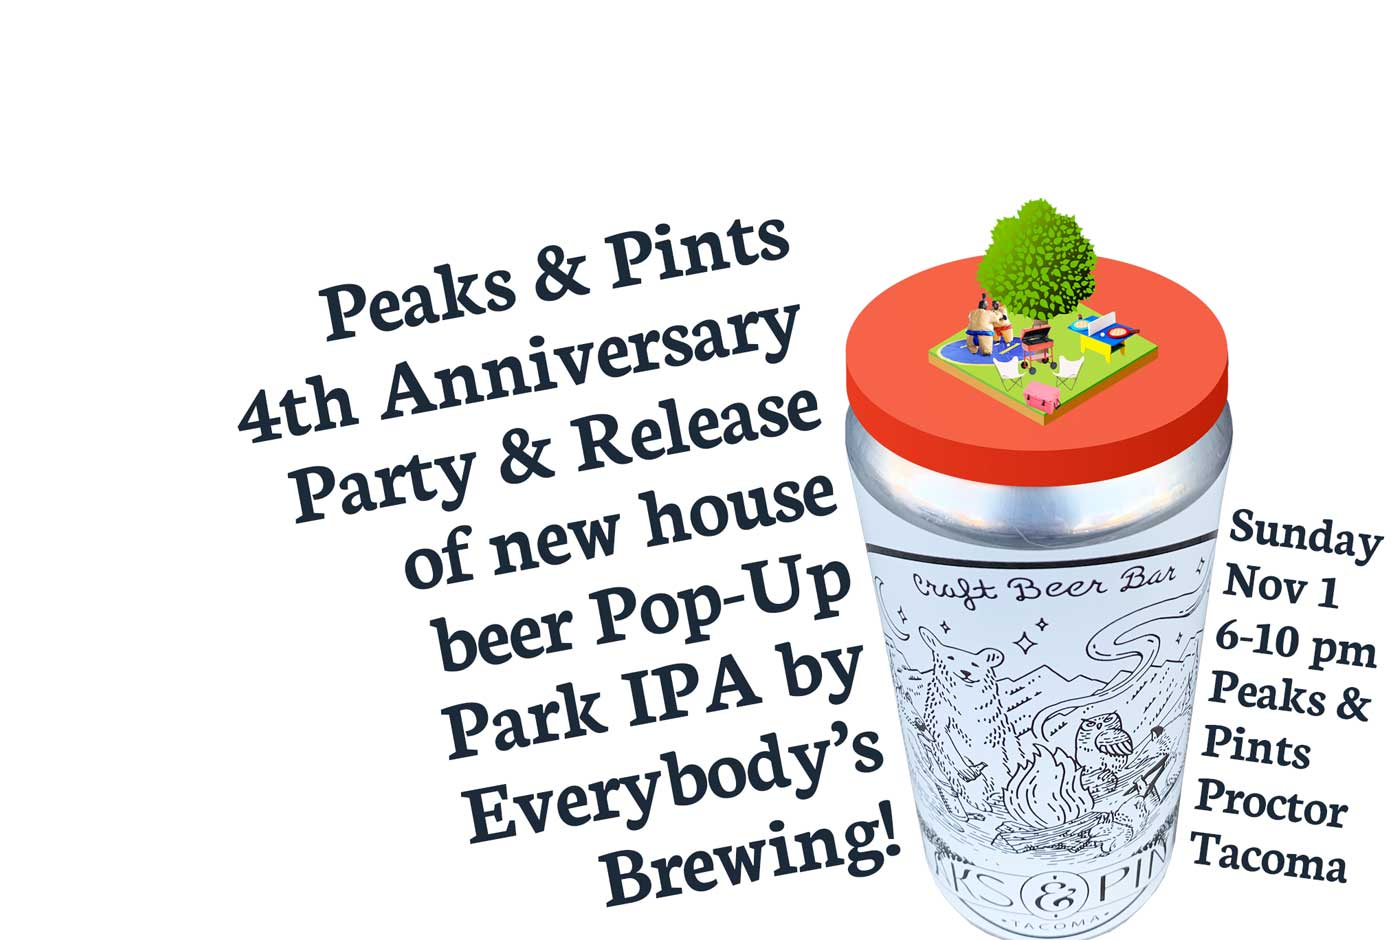 Peaks-and-Pints-4th-Anniversary-Party-Calendar